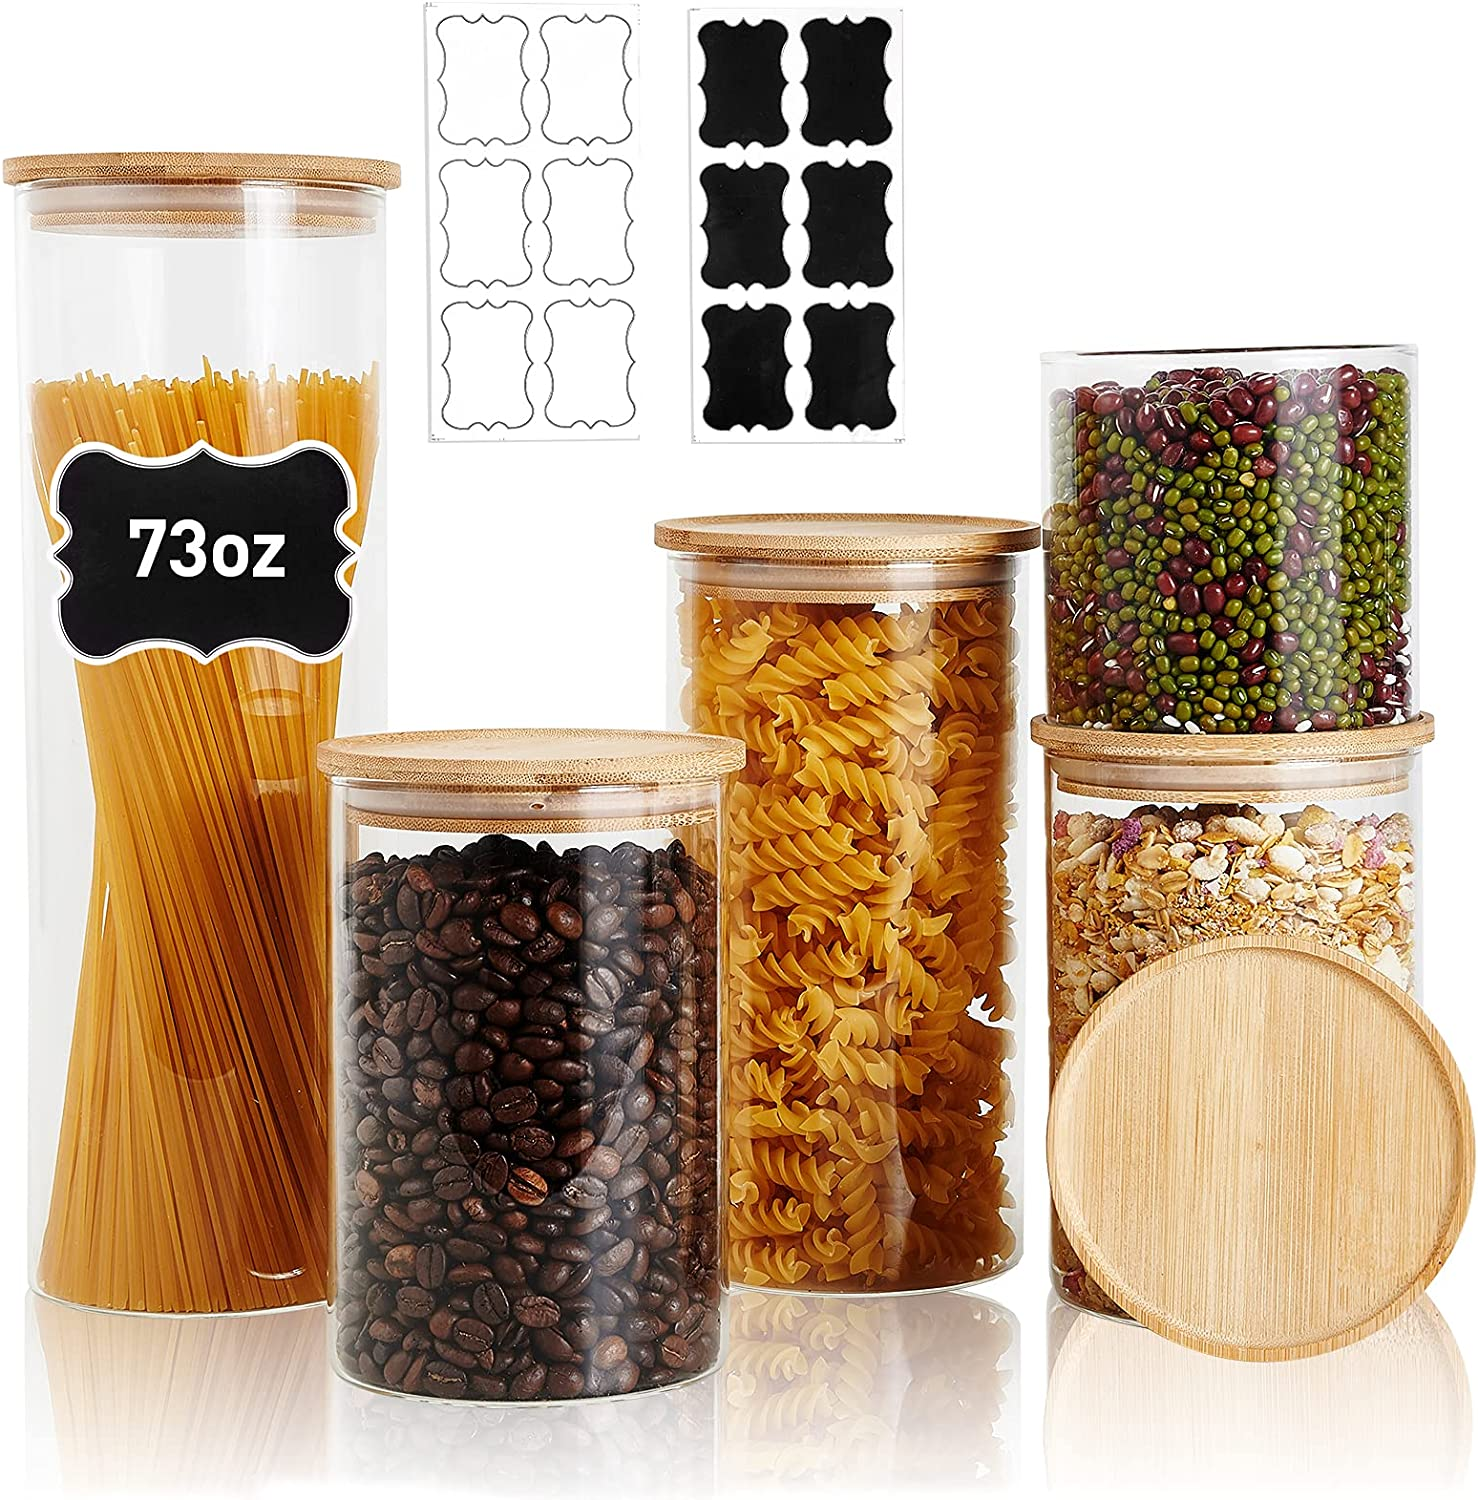 LIFESENCE Canisters Glass Kitchen Containers Set of 5 Glass Food Storage Jars with Bamboo Airtight Lids and Labels for Kitchen Bathroom 73 oz 48 oz 35 oz and 22 oz Ideal for Pasta Coffee Cookie Candy and More